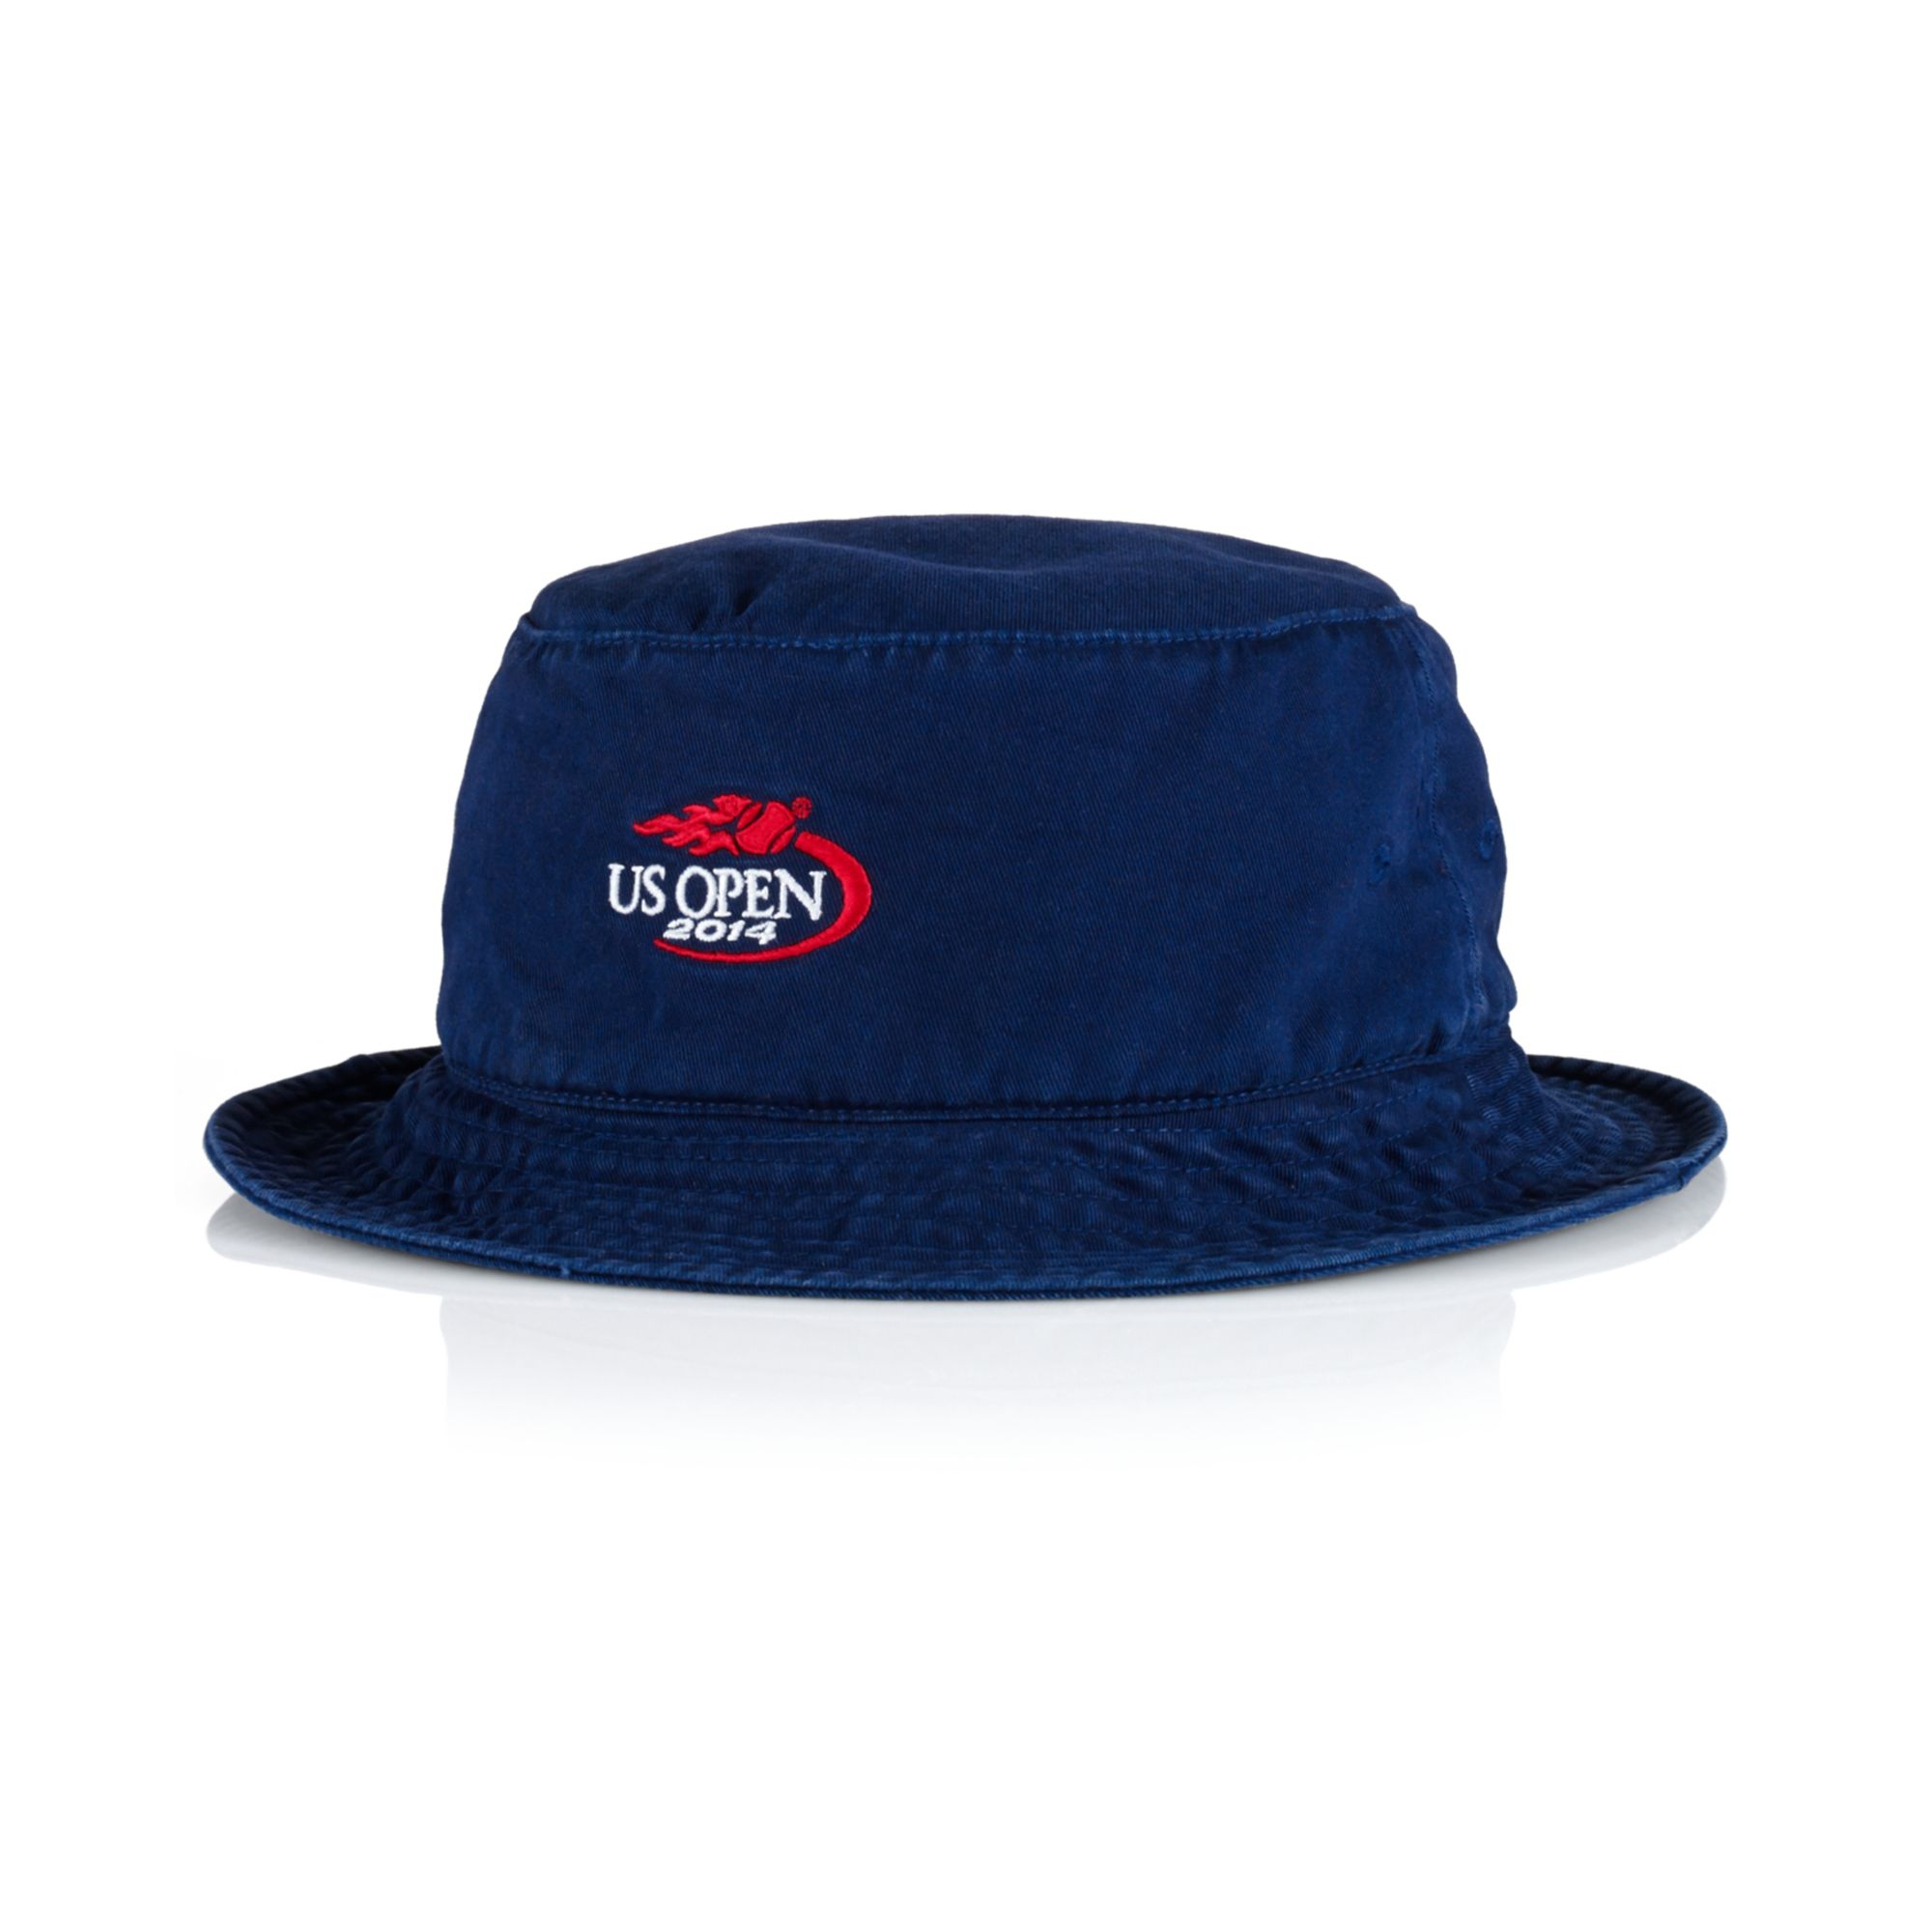 Polo ralph lauren men s chino bucket hat 1 reviews main image bucket hats are on trend here 10 of the best for men men polo bucket hats hat hd image ukjugs and polo ralph lauren tip cotton bucket hat men s women hats cap pony ralphlauren bucket hats are on trend here 10 of the best for men.